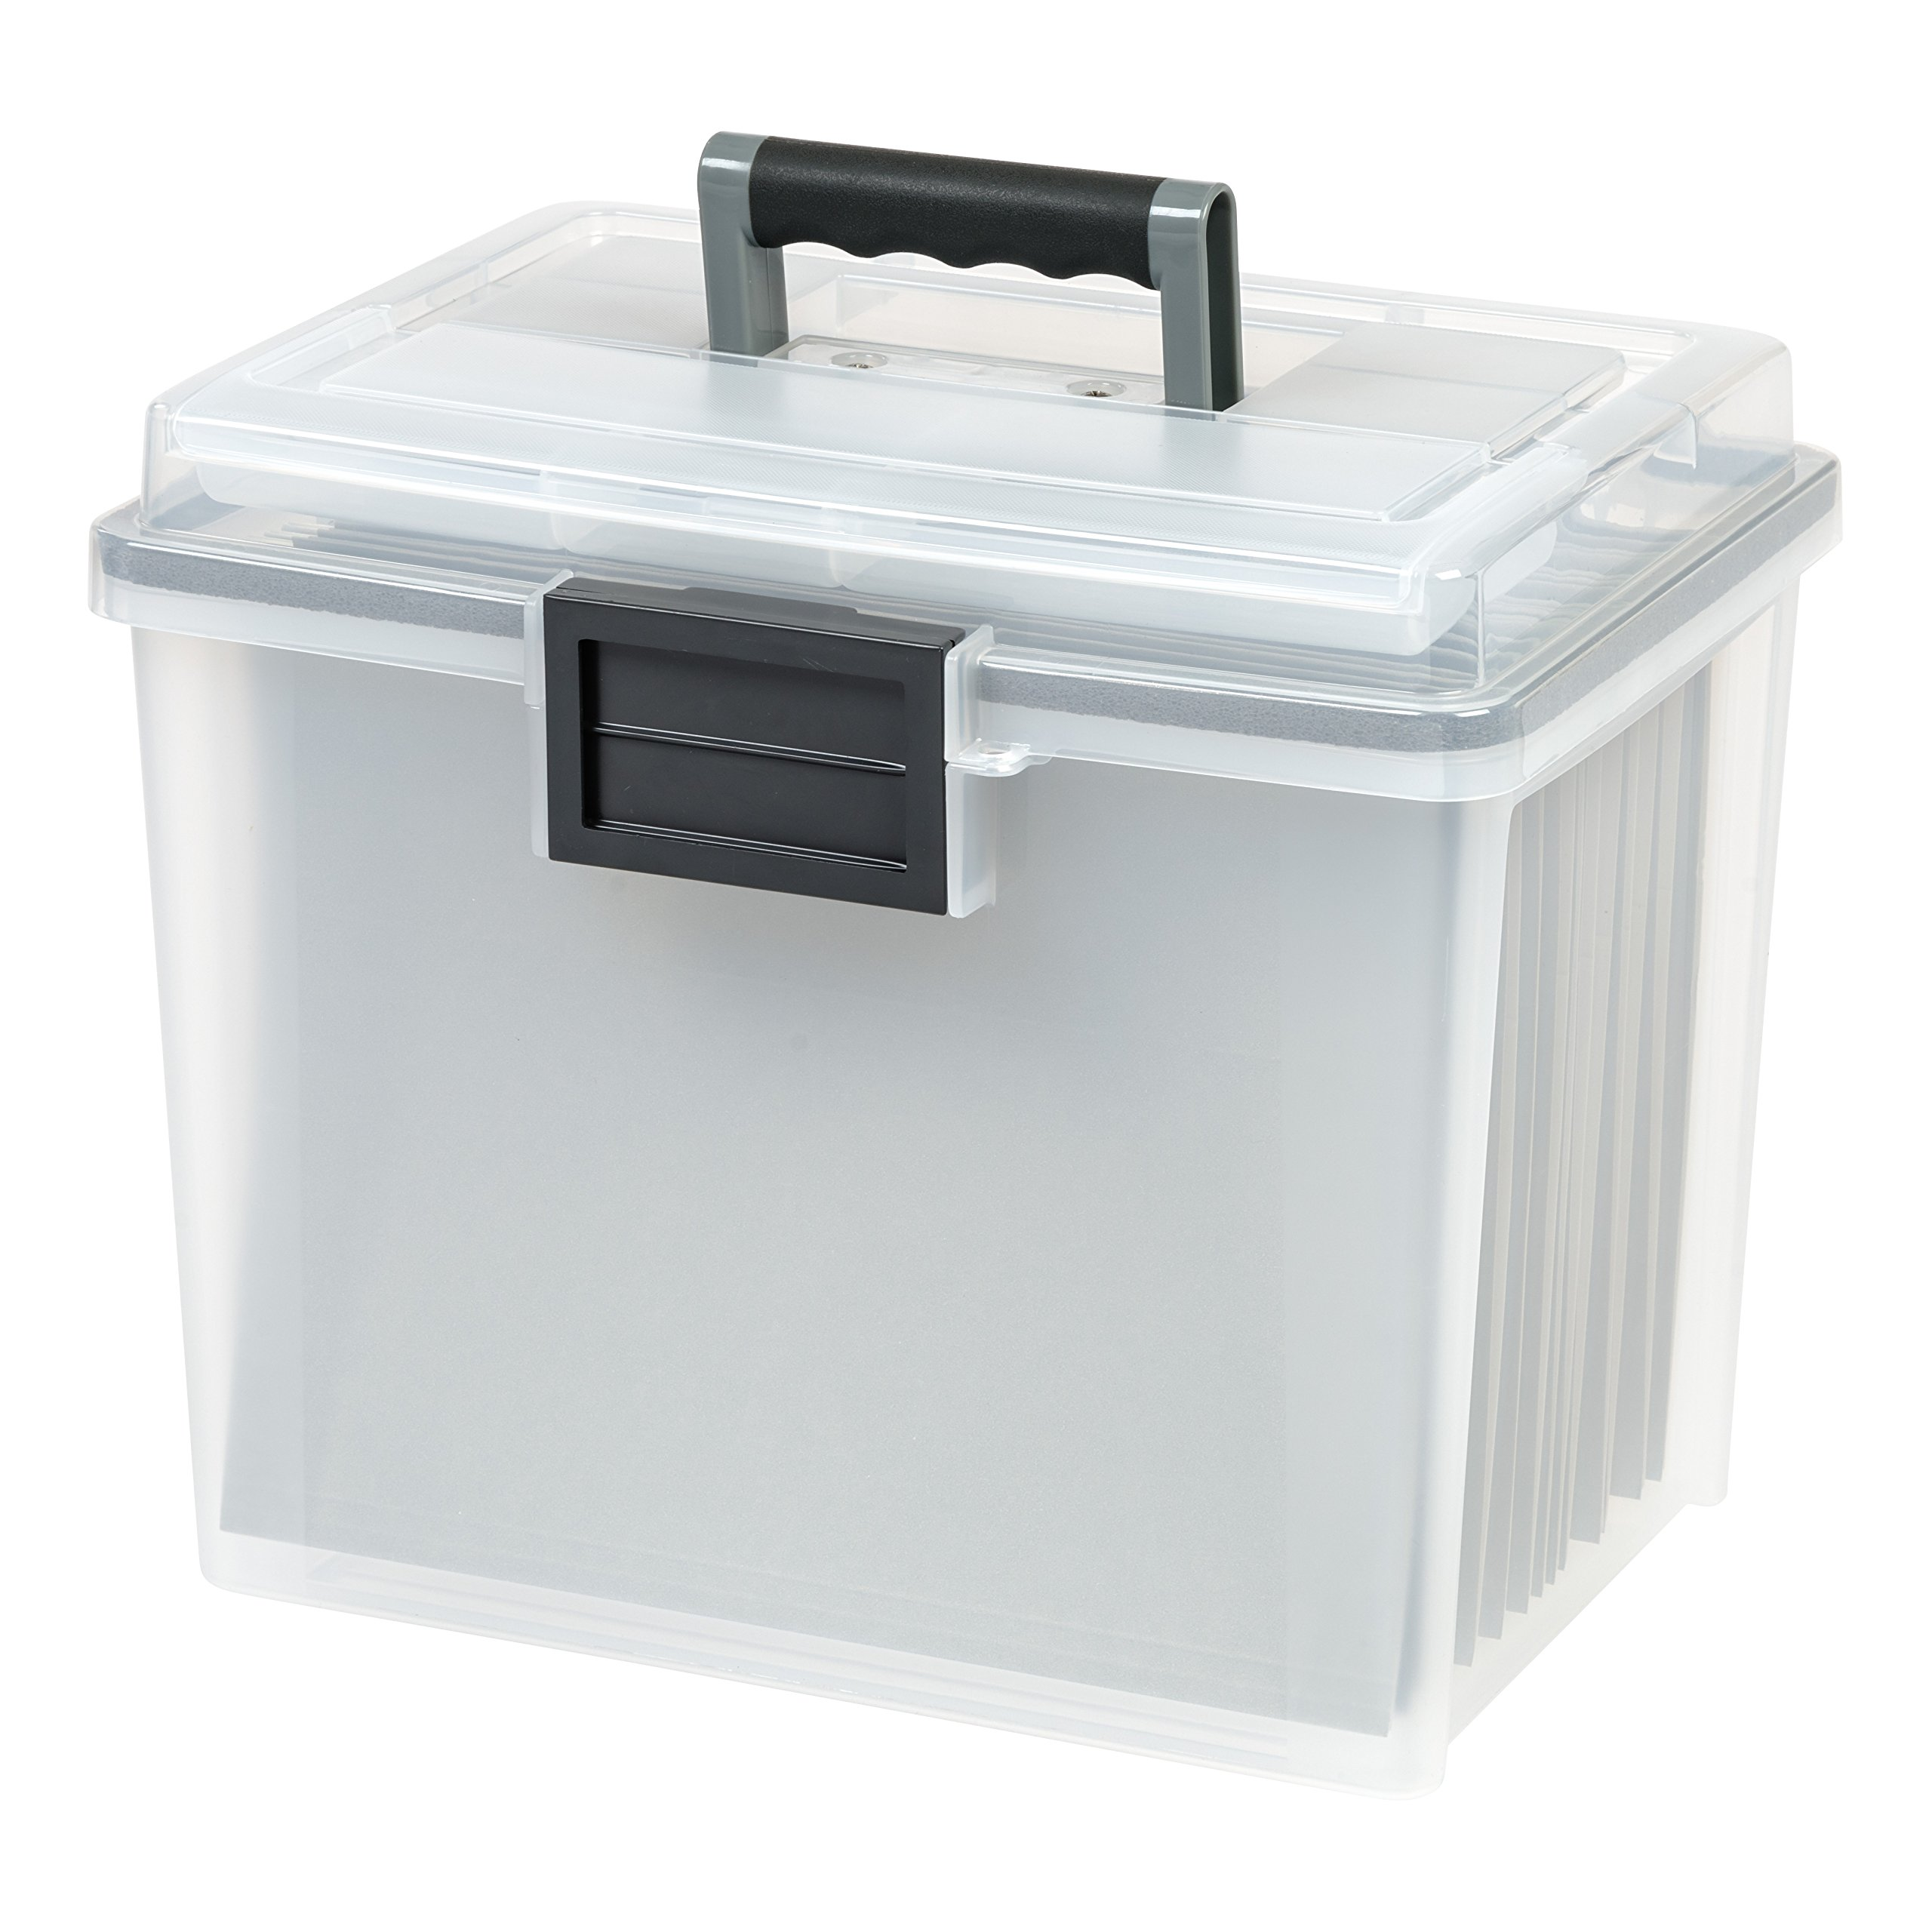 IRIS Letter Size Portable Weathertight File Box, 4 Pack, Clear